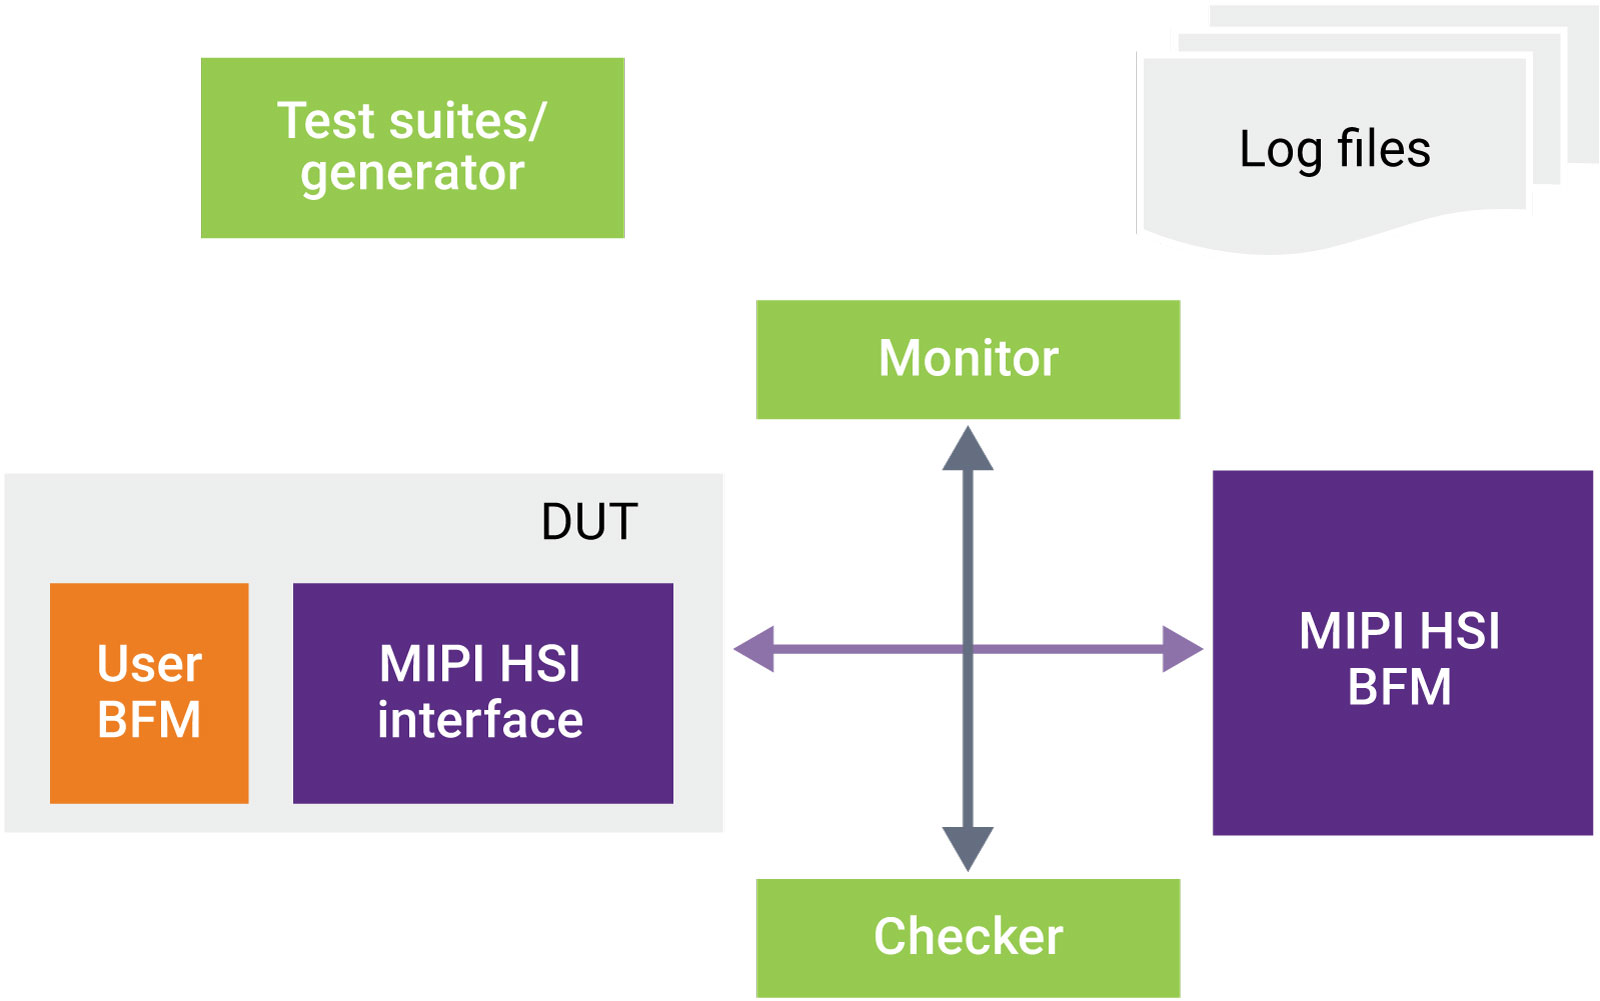 Verification IP for MIPI HSI